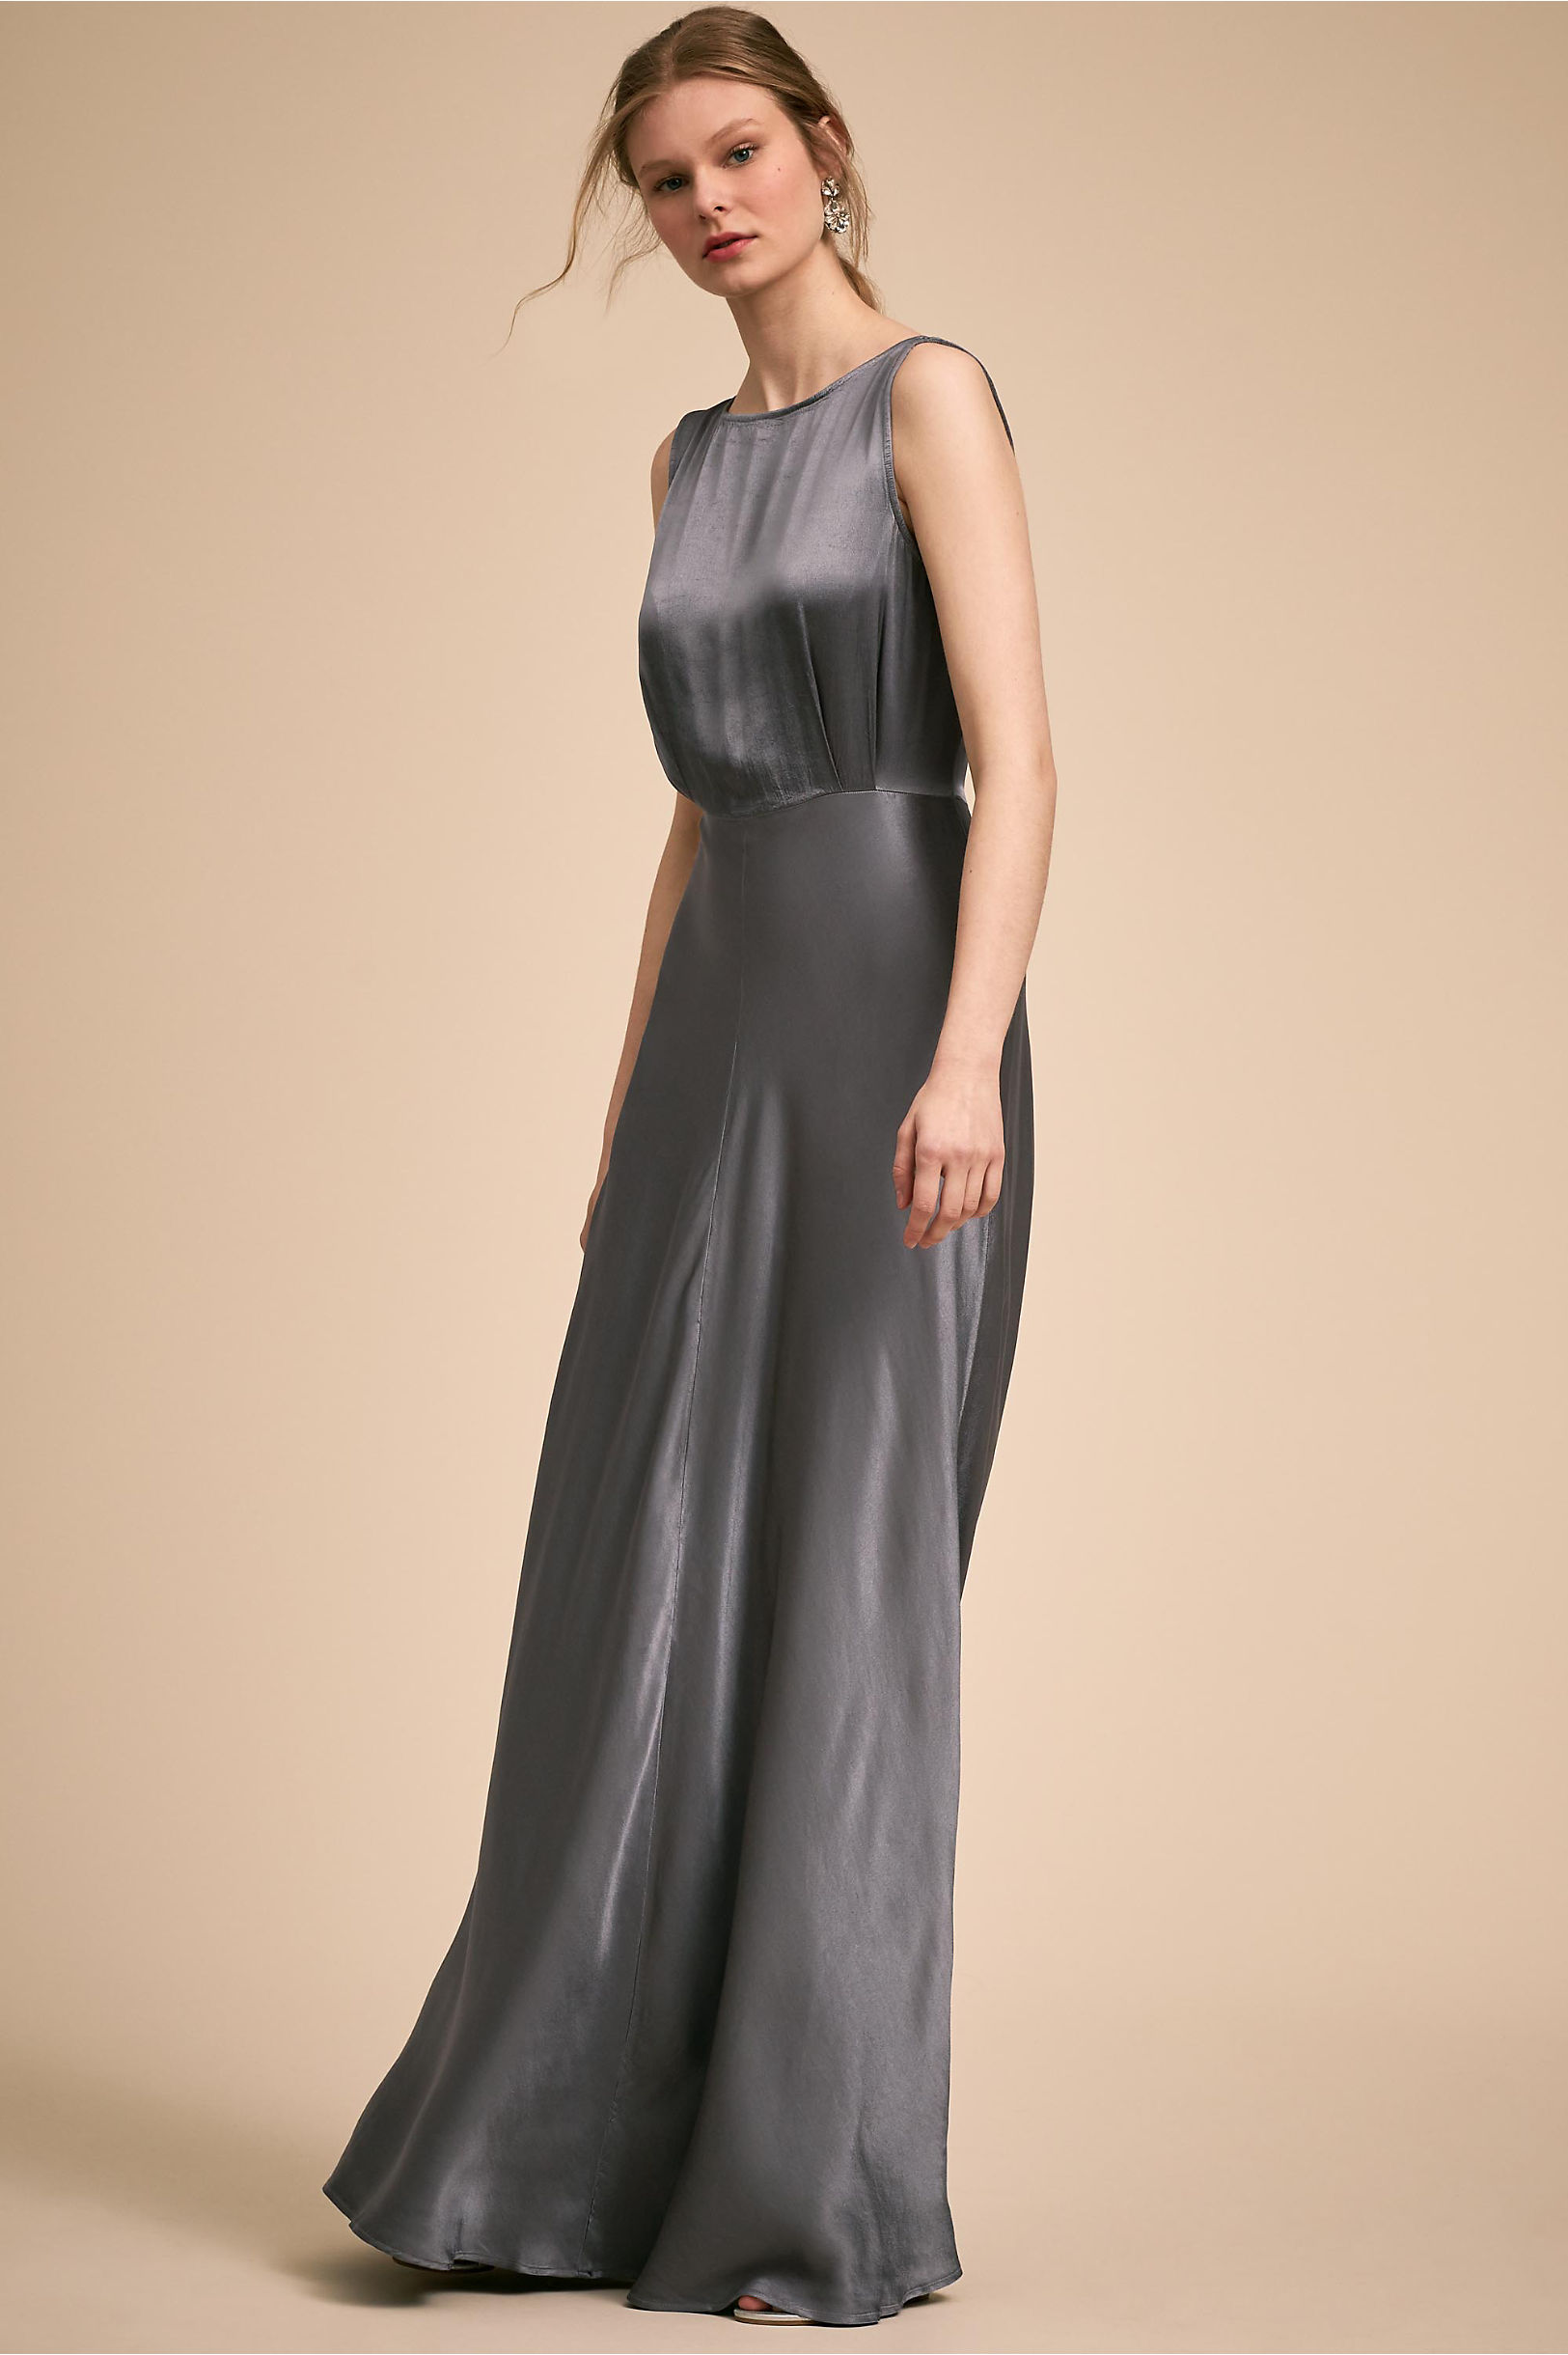 Alexia Dress Oyster in Bridal Party | BHLDN